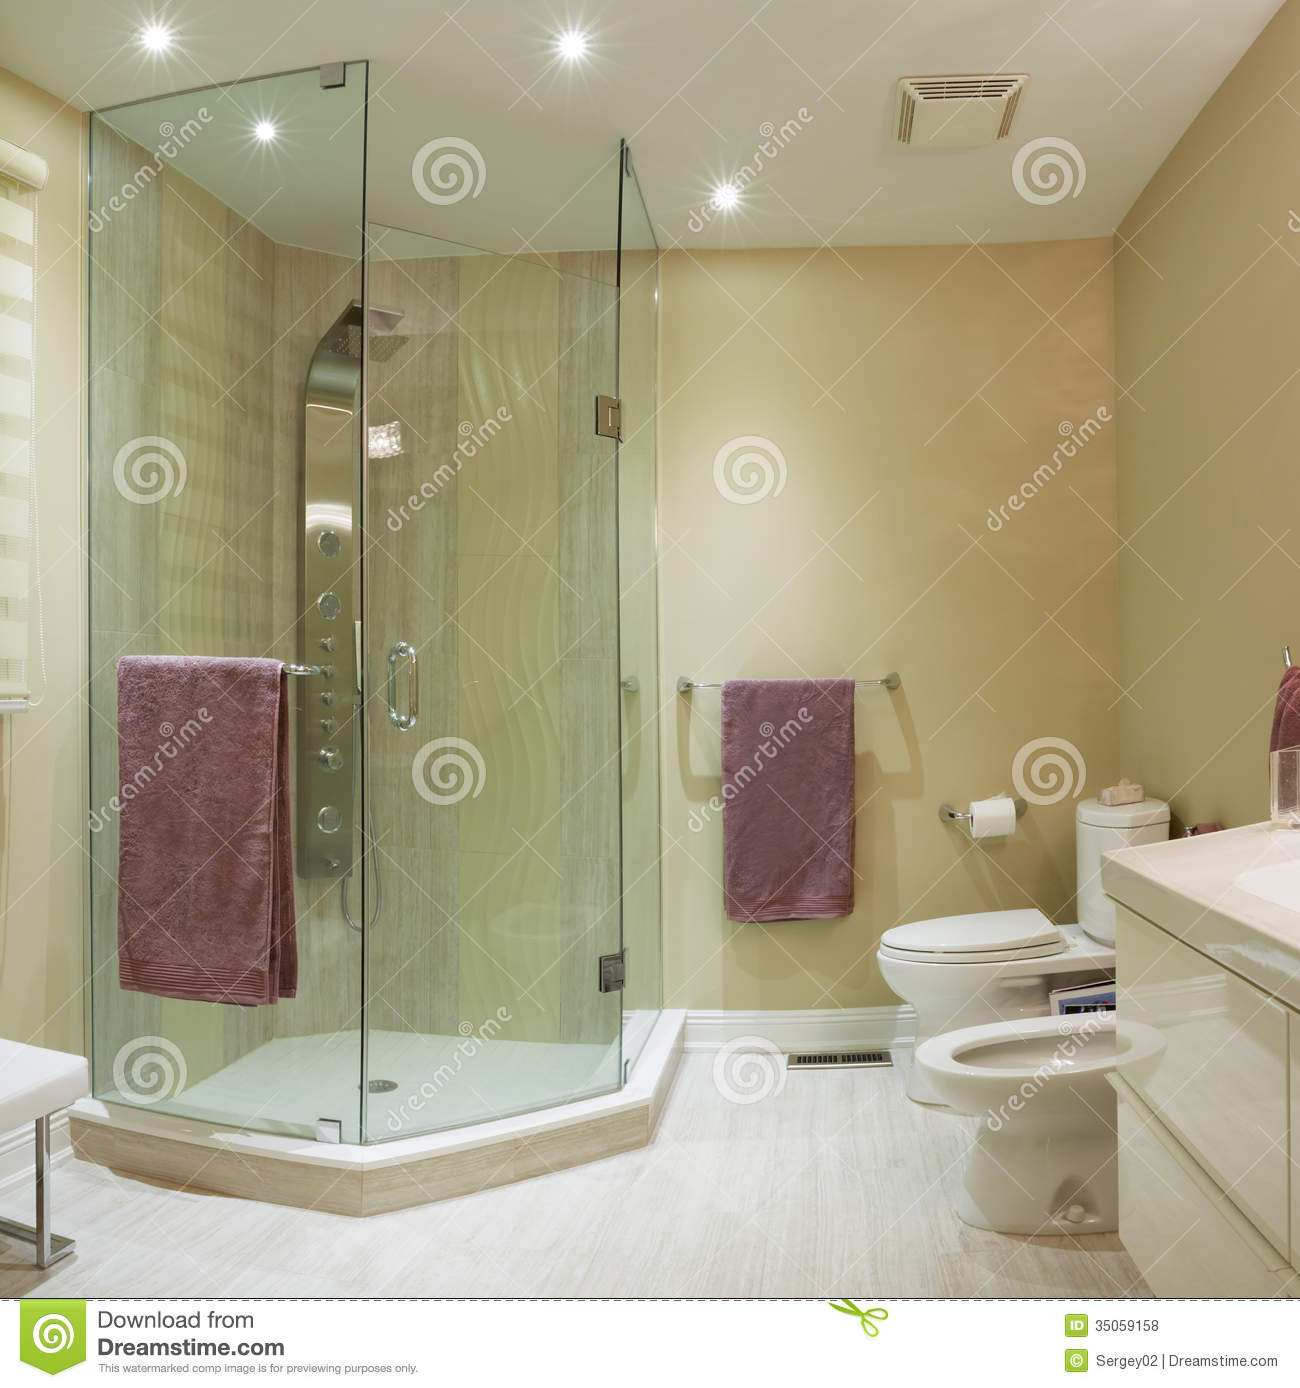 Home Design Ideas Bathroom: Interior Design Stock Photo. Image Of Floor, Household